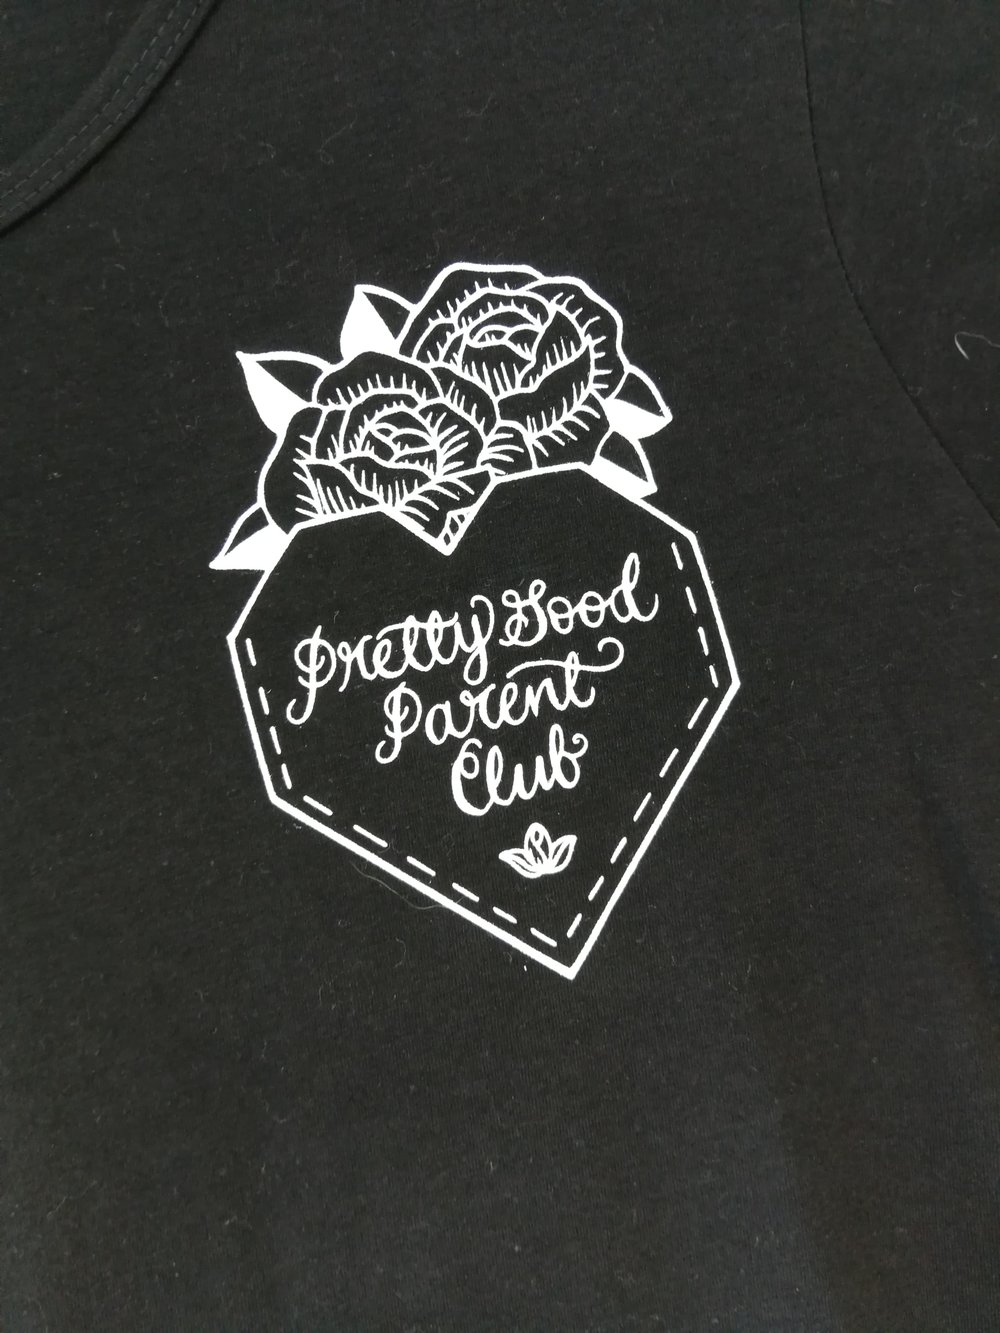 Keepin' it real with our Pretty Good Parent Club T-Shirt available in sized M - XXL.